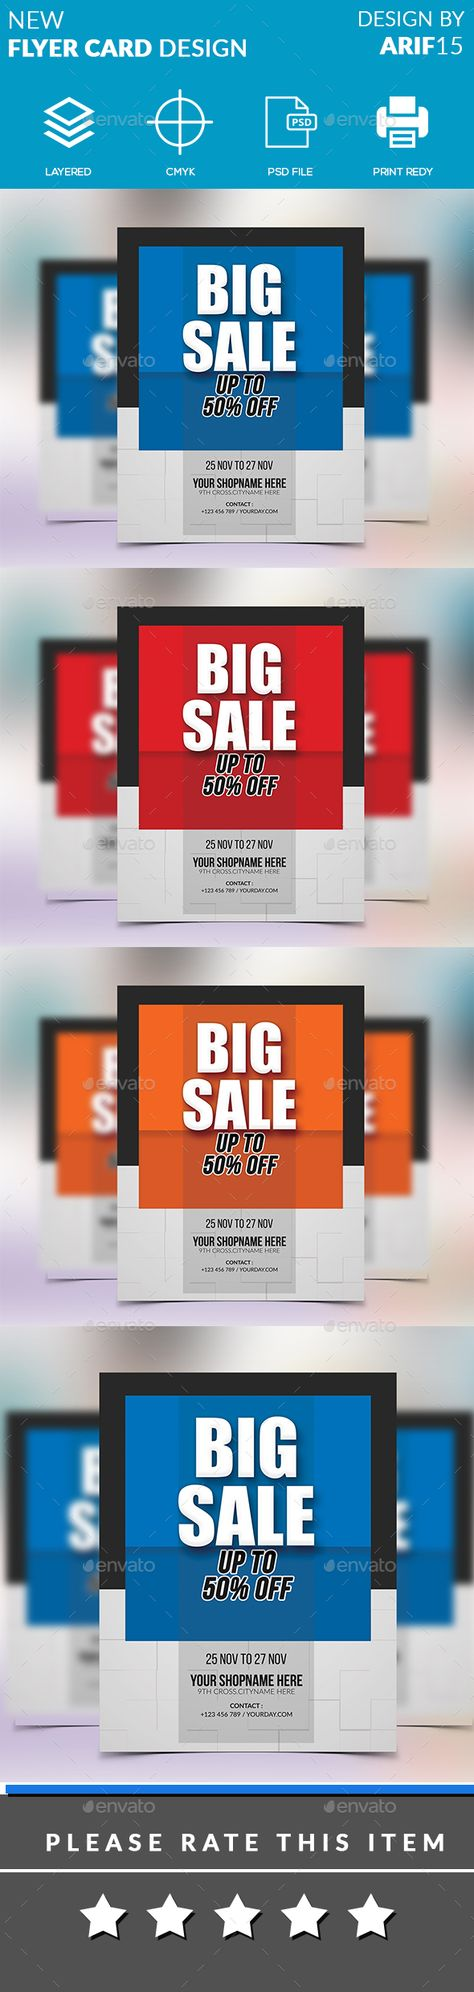 List Of Pinterest Promo Flyer Template Pictures Pinterest Promo